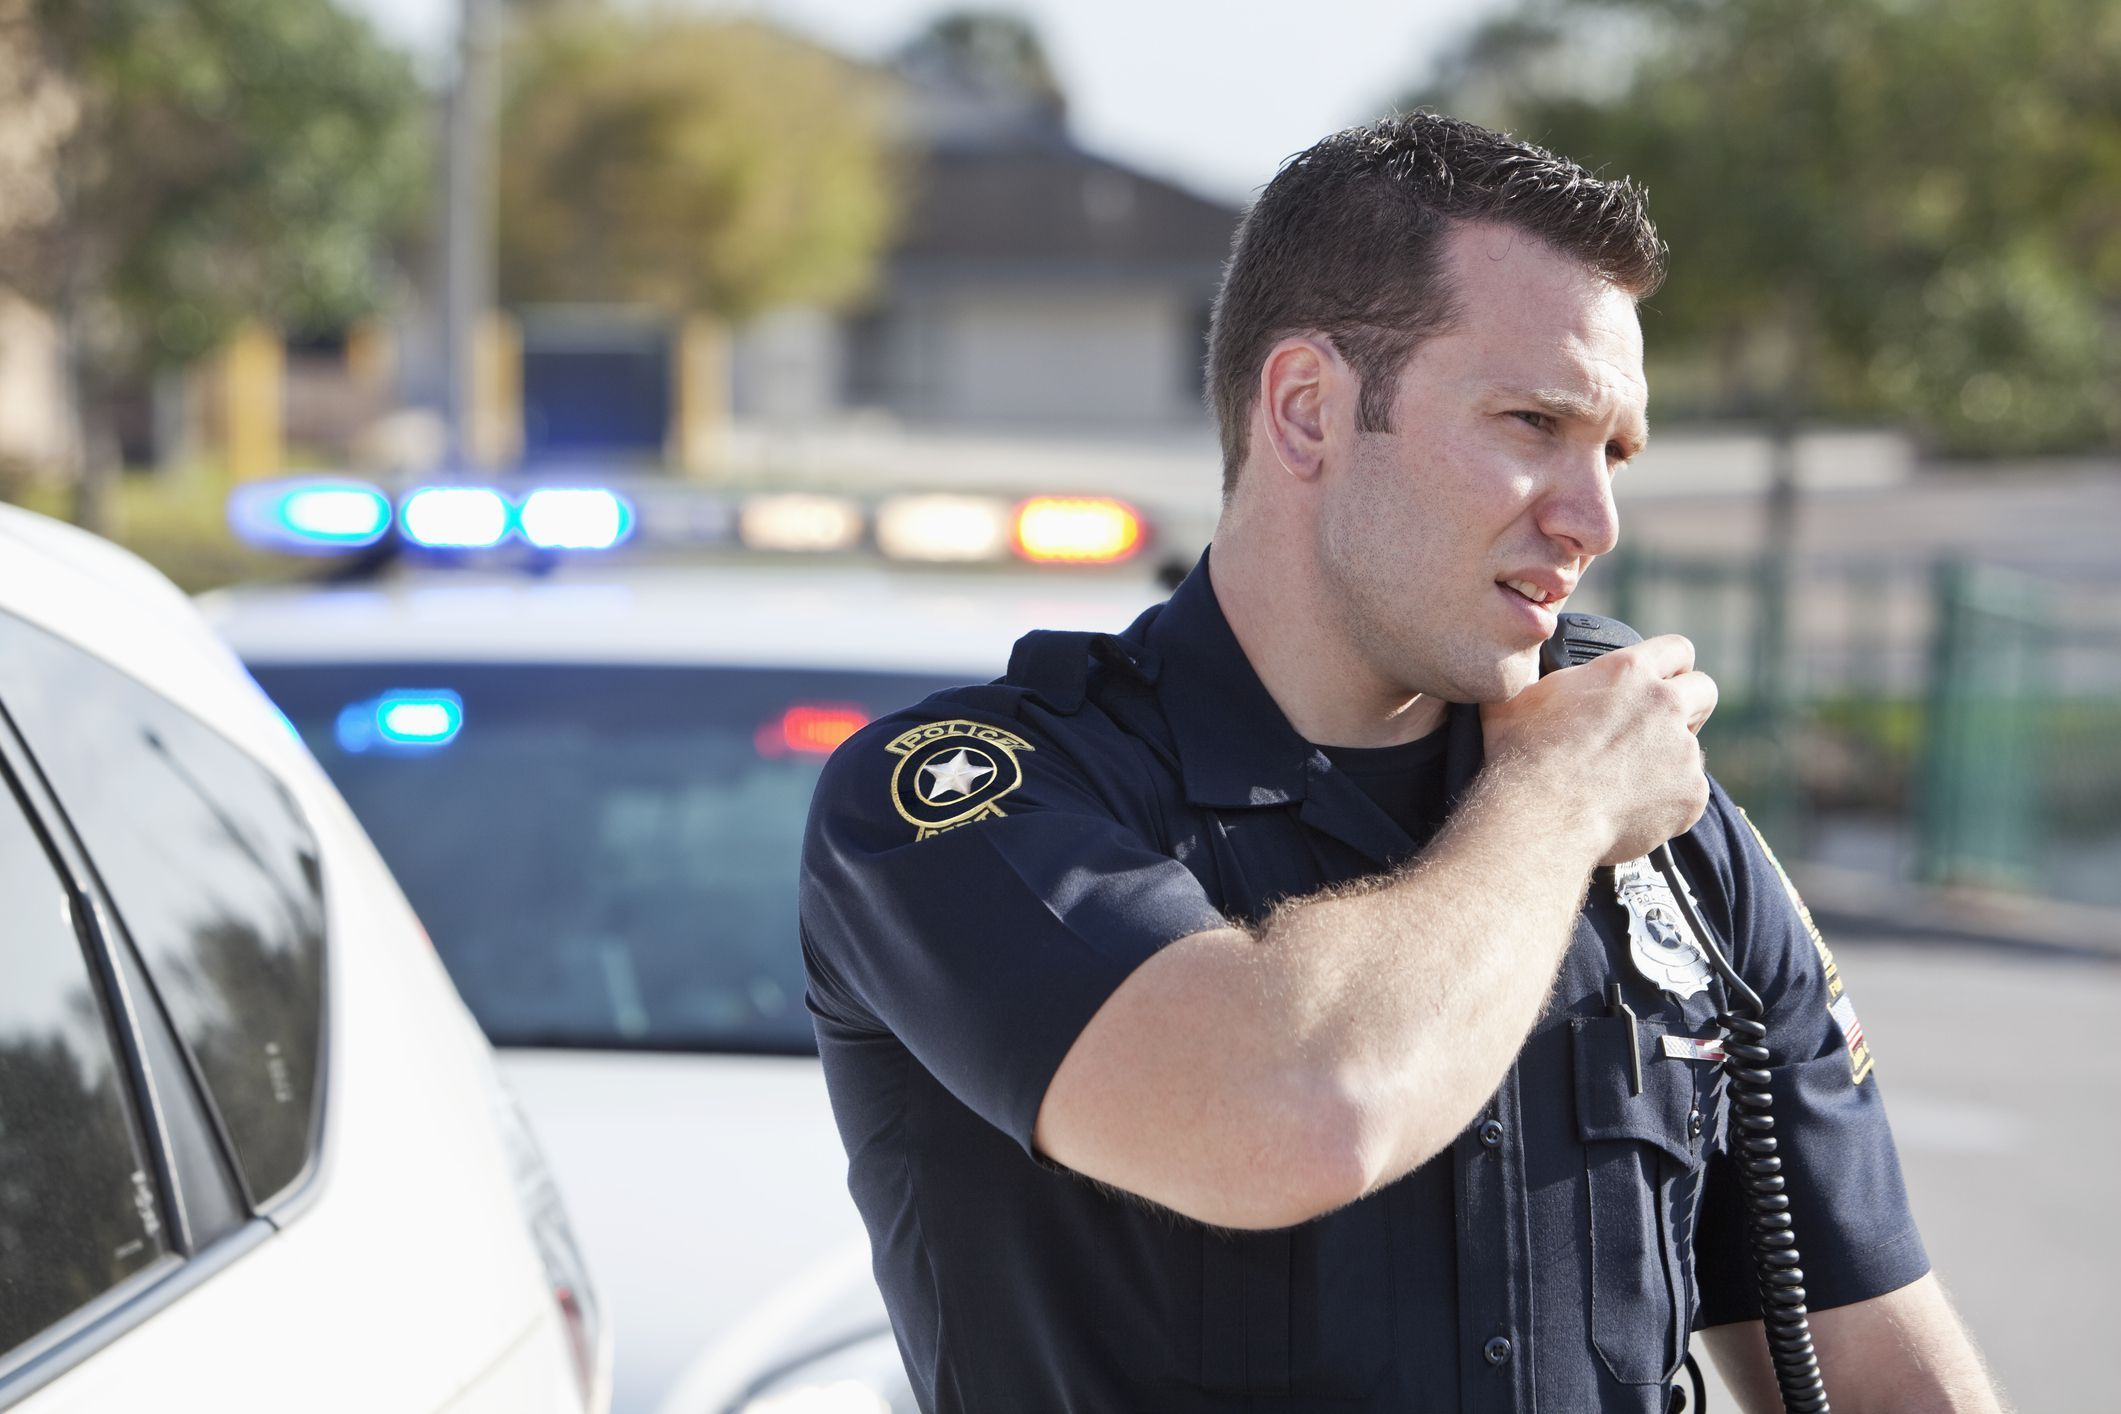 Image result for police speaking into walkie talkie